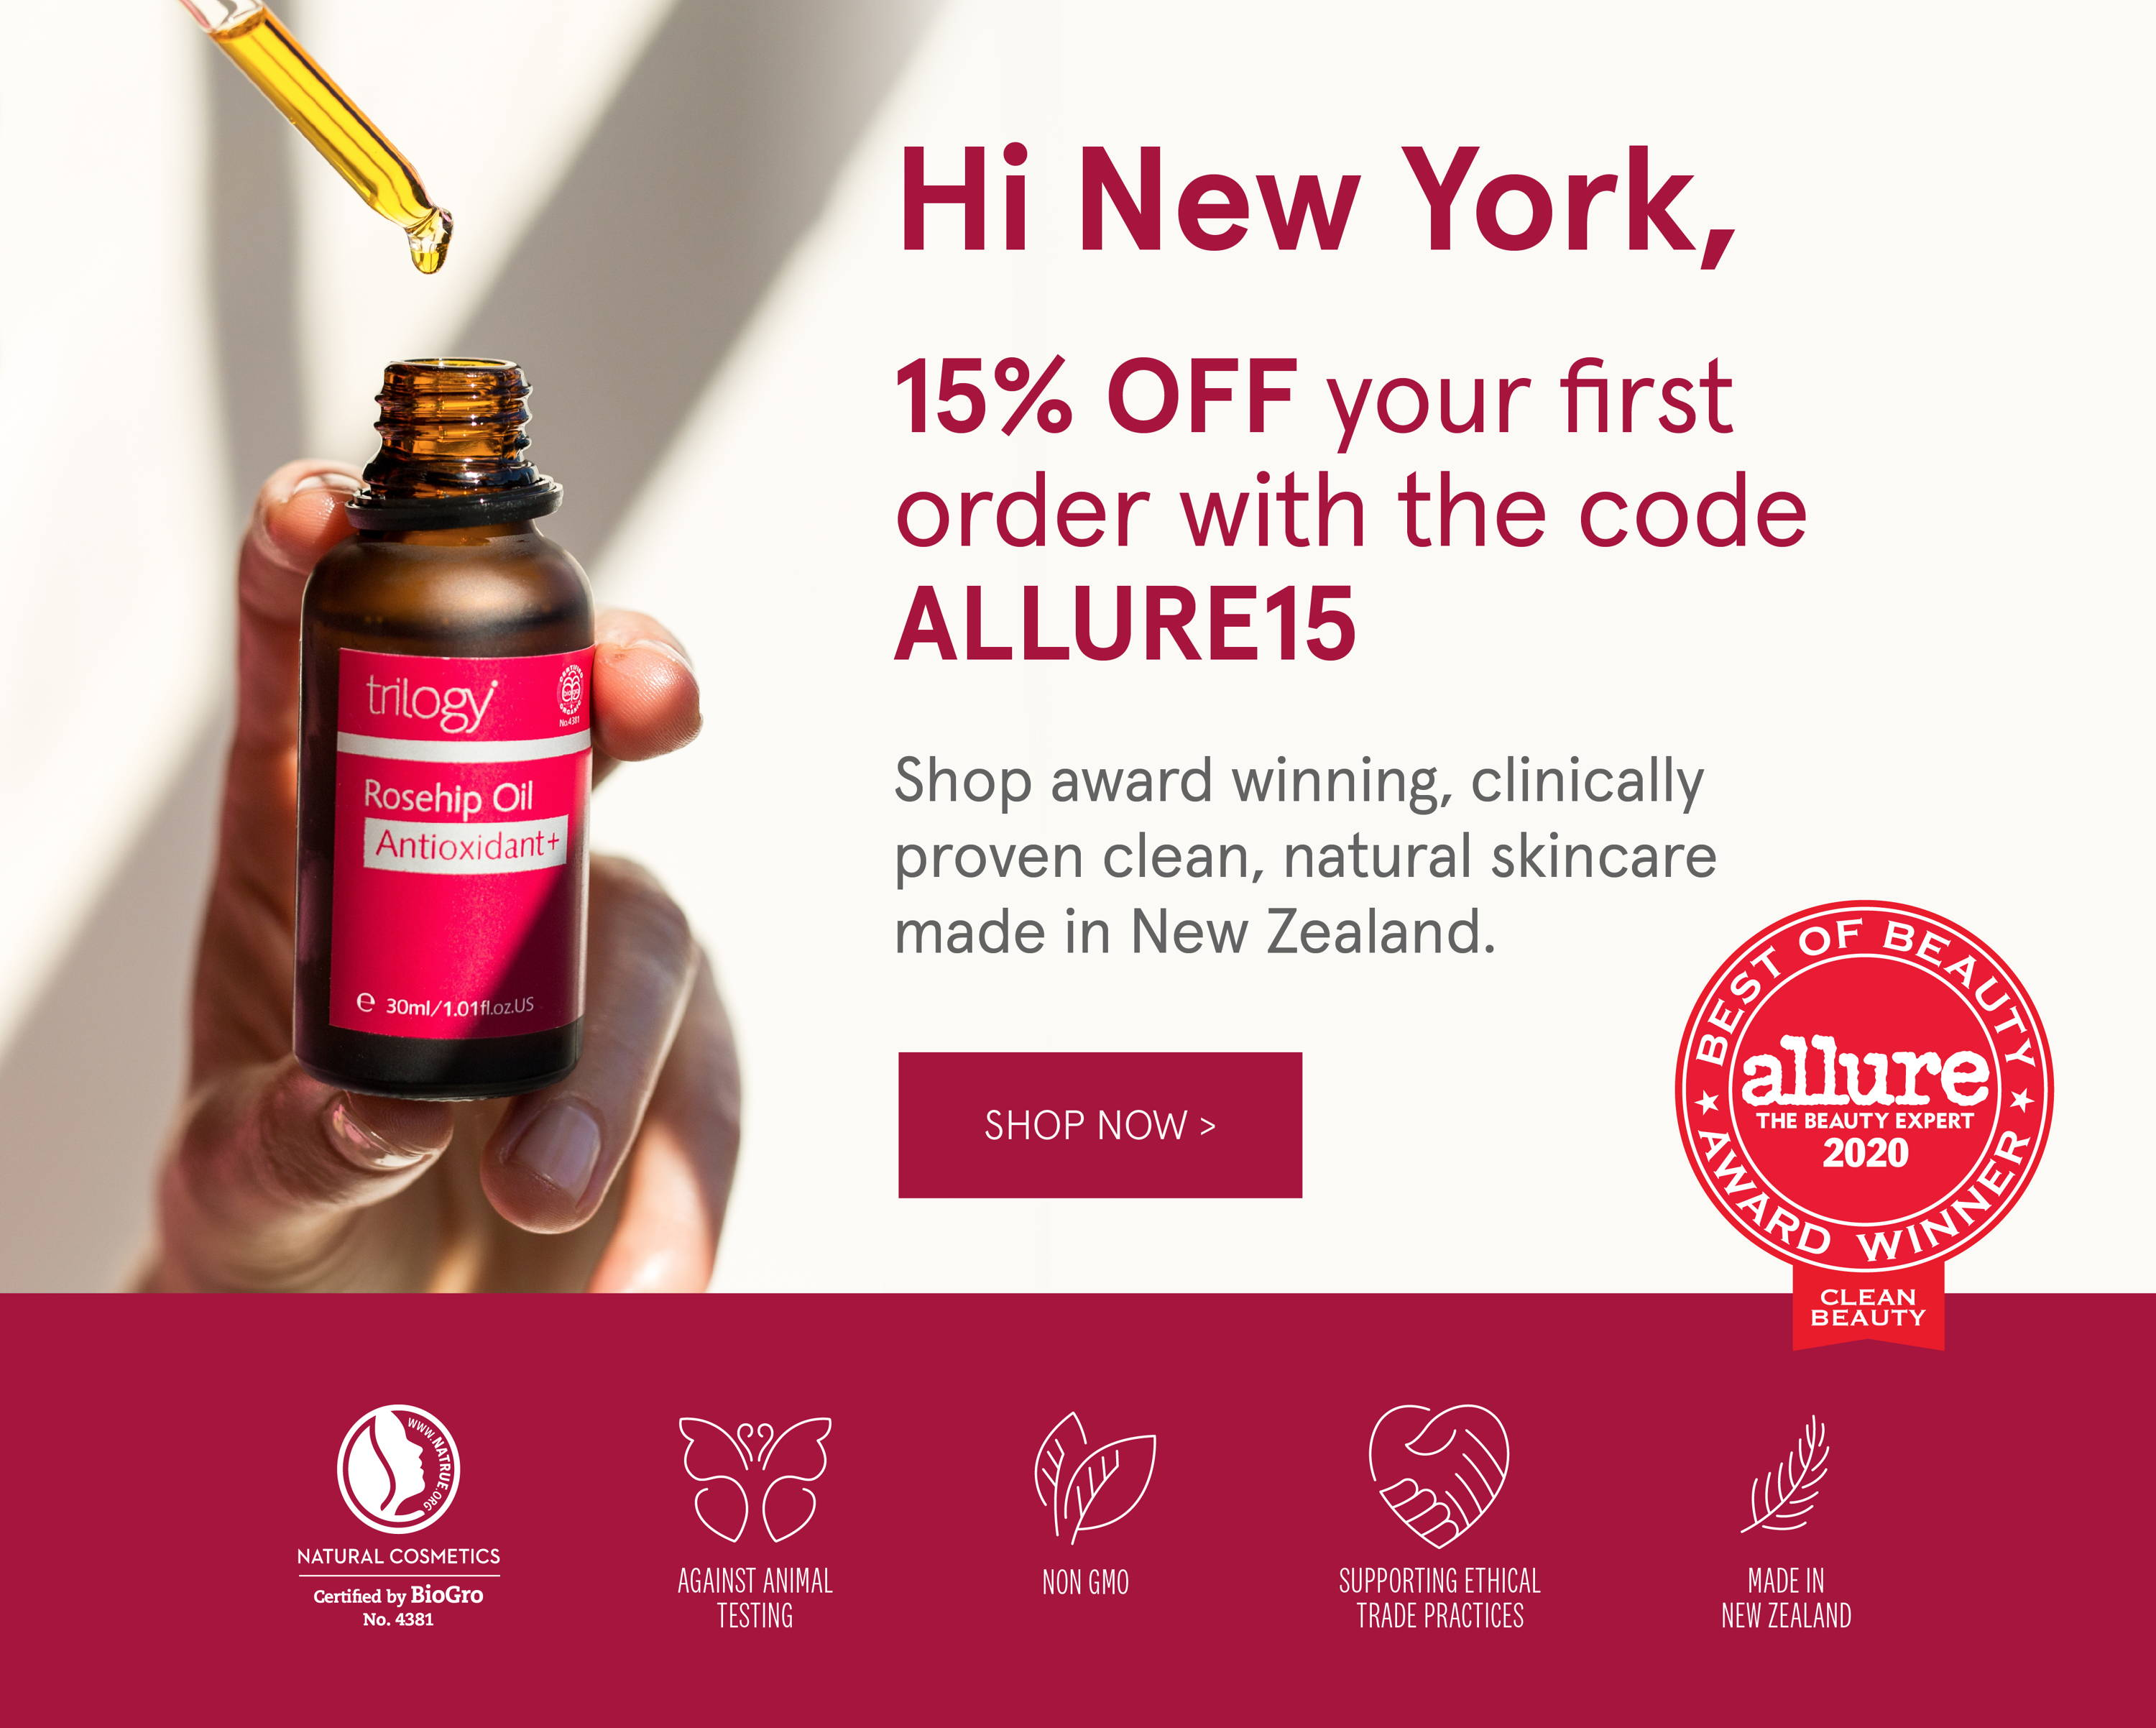 15% off your first order with code ALLURE15